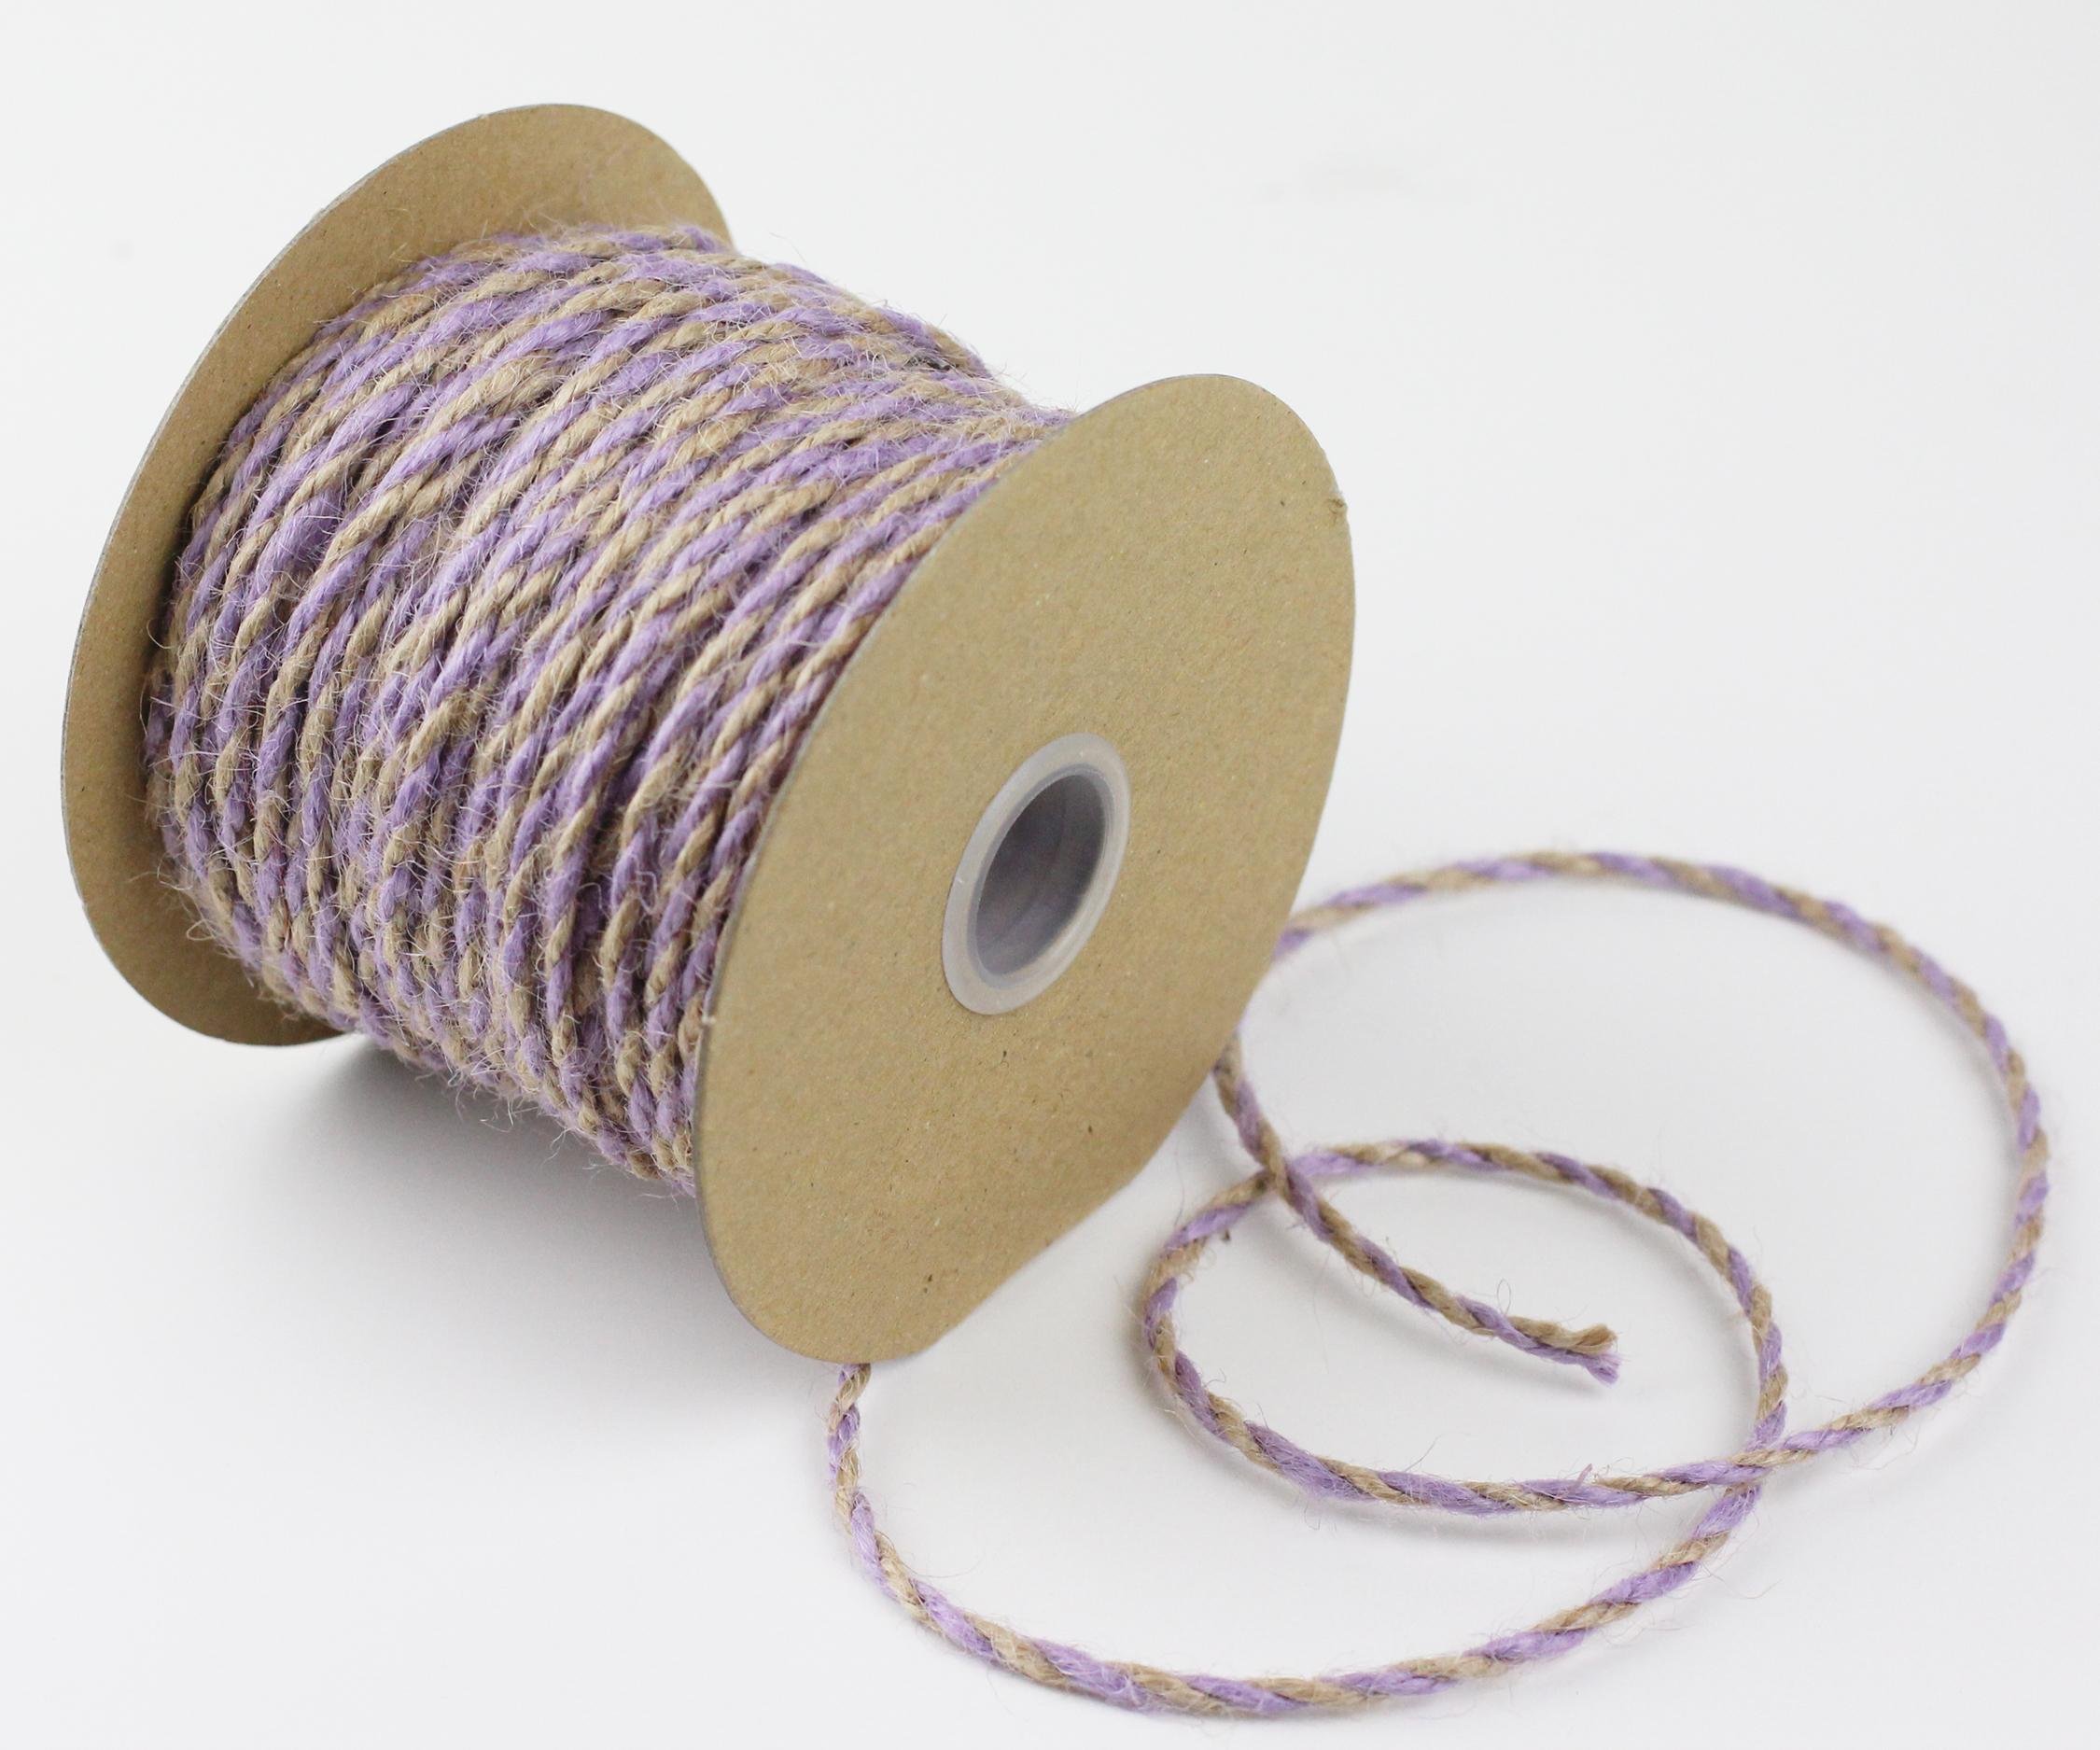 Lavender/Natural Jute Twine - 2.5mm x 50 Yards